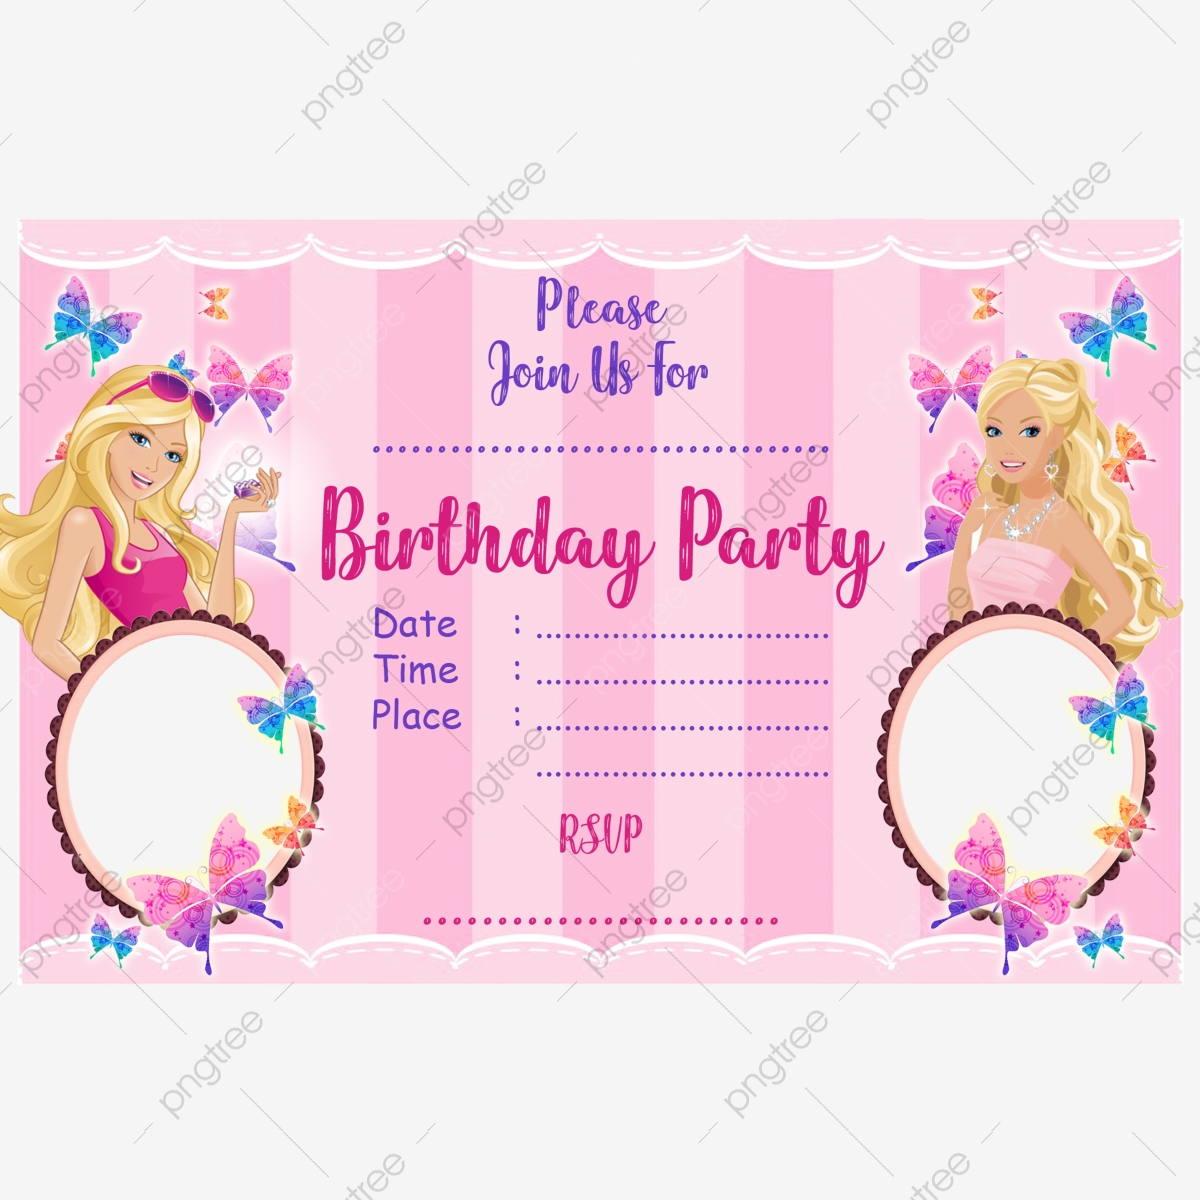 Barbie Birthday Invitation Card Template for Free Download on Pngtree